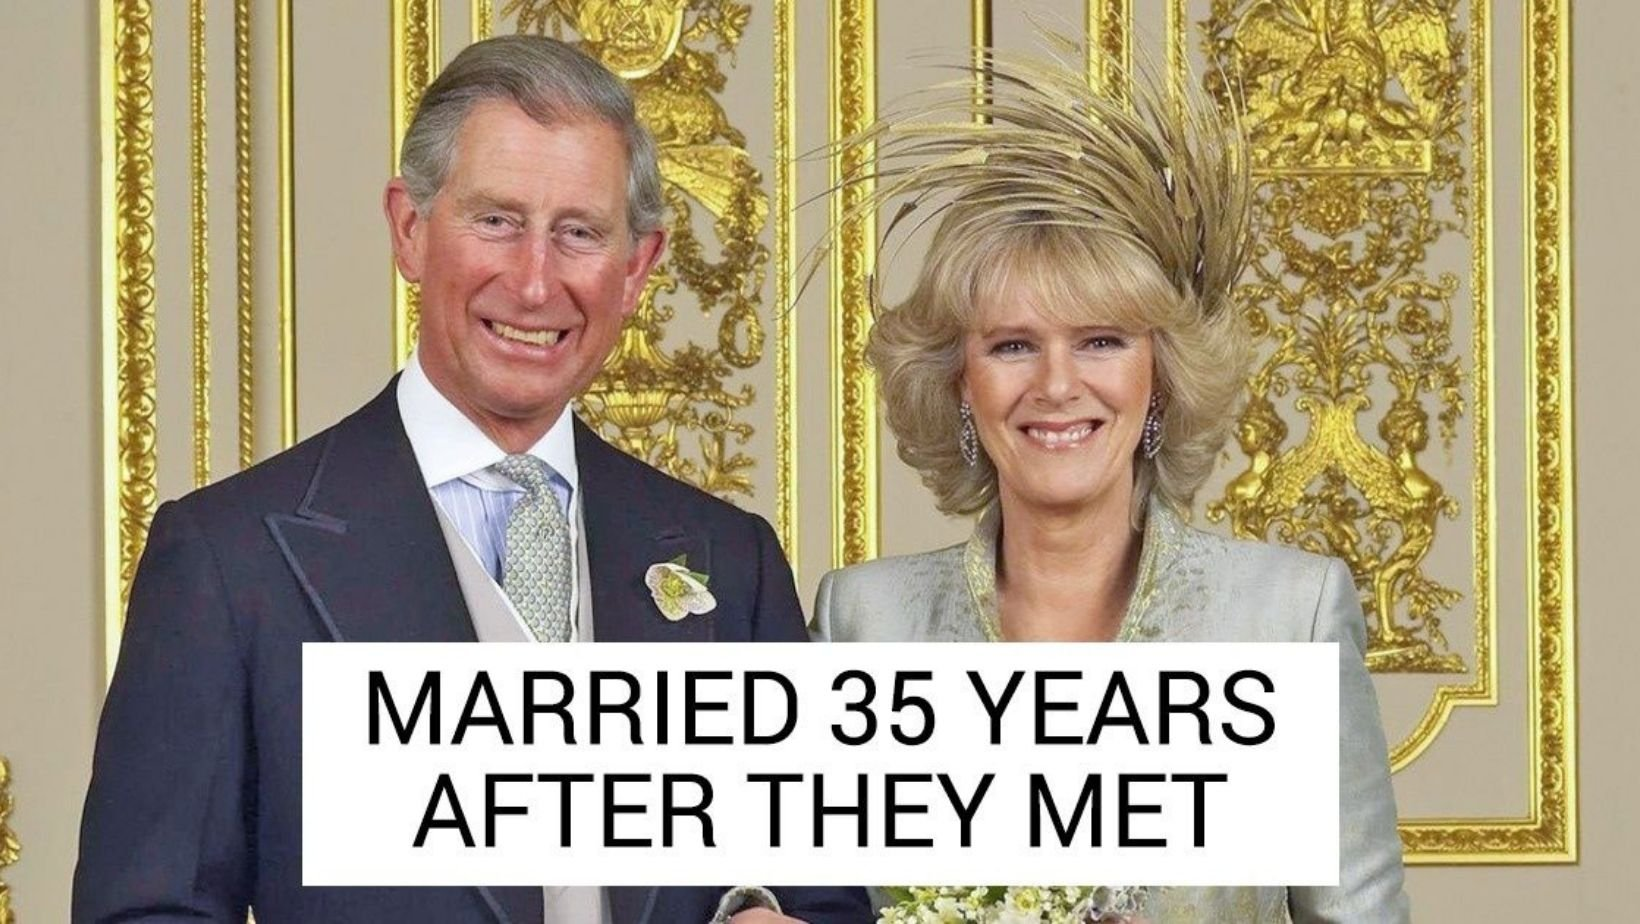 small joys thumbnail 4.jpg?resize=412,232 - Top 5 Love Stories Of Royal Couples That Will Make You Believe In Fairytales